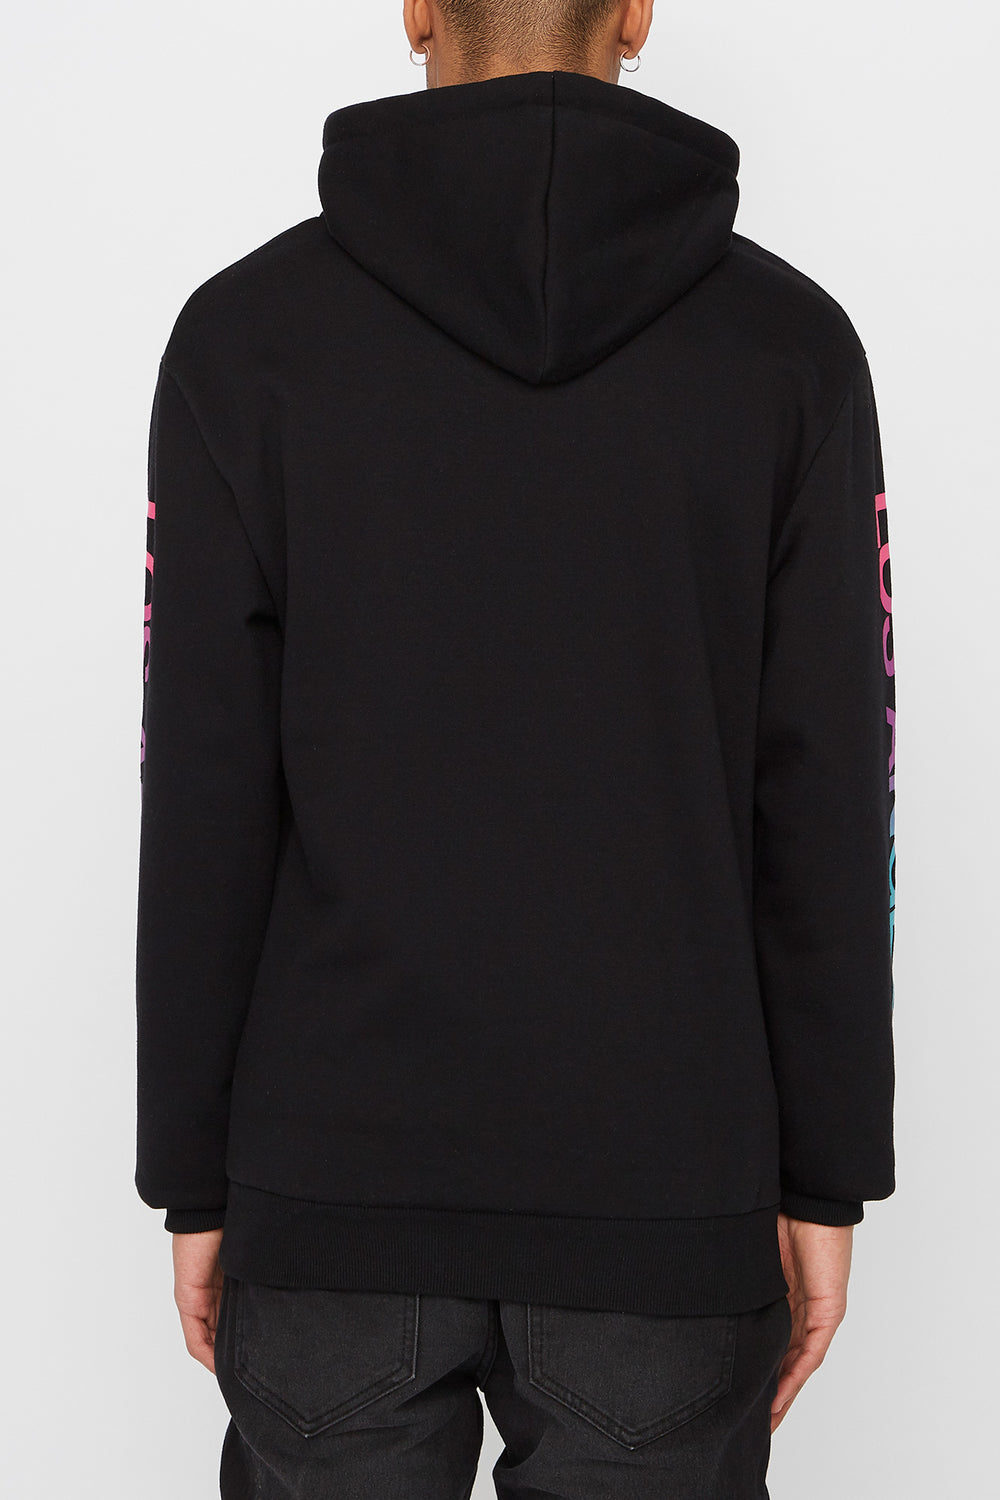 Young & Reckless Mens Gradient Logo Hoodie Black